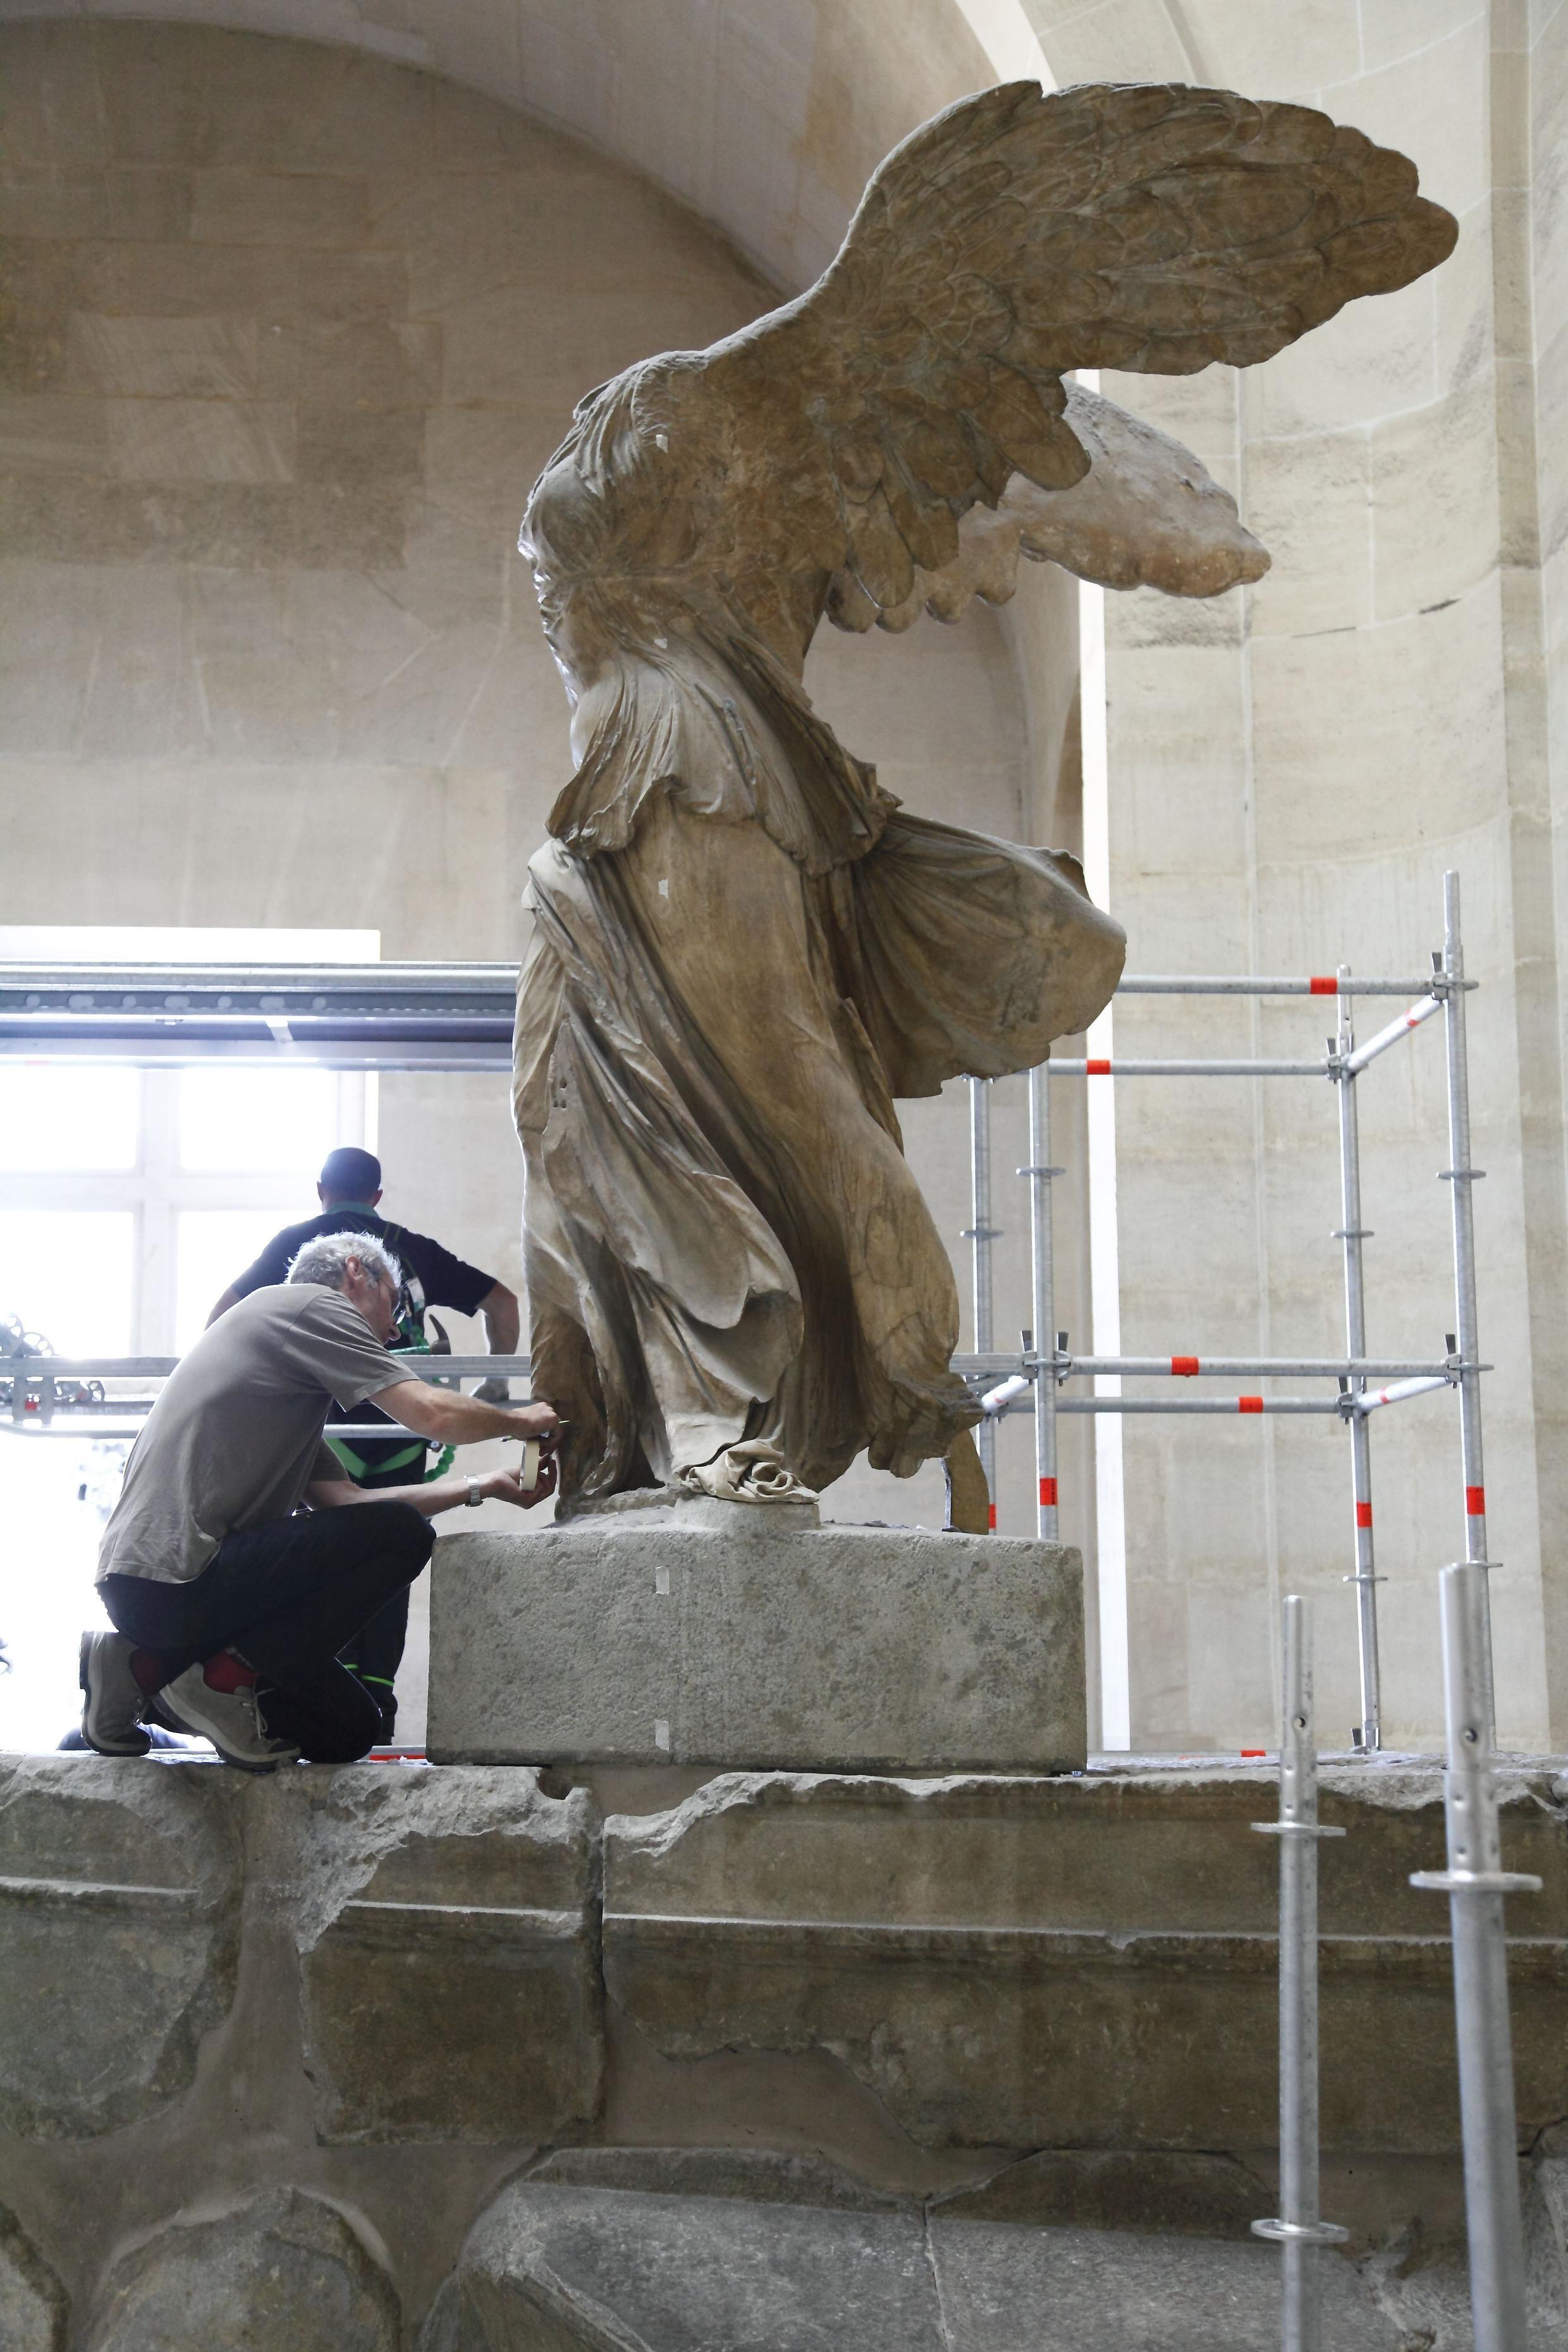 The Winged Vivtory of Samothrace is one of the Louvre's best-known works